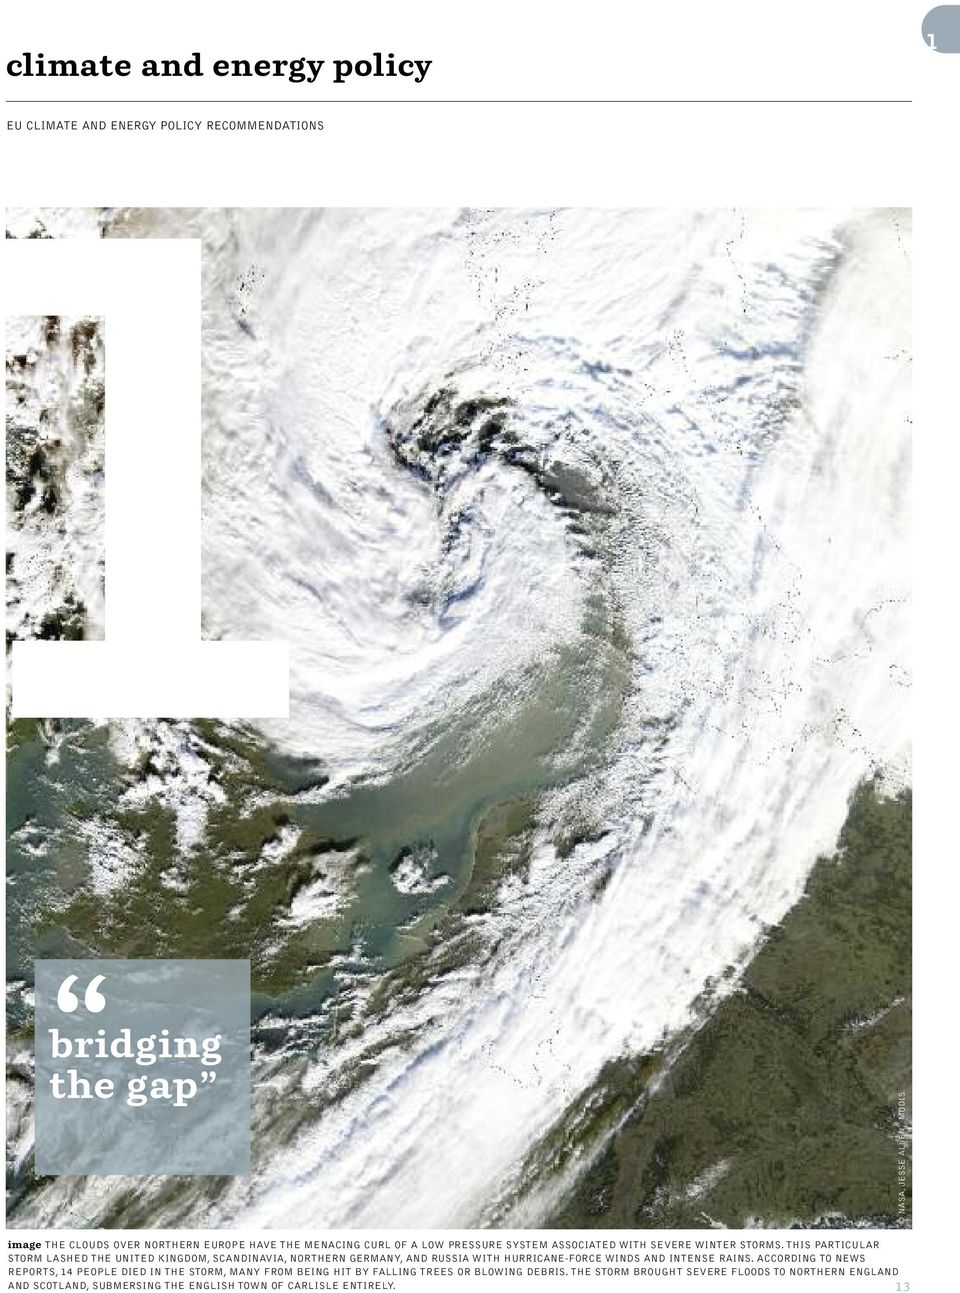 THIS PARTICULAR STORM LASHED THE UNITED KINGDOM, SCANDINAVIA, NORTHERN GERMANY, AND RUSSIA WITH HURRICANE-FORCE WINDS AND INTENSE RAINS.